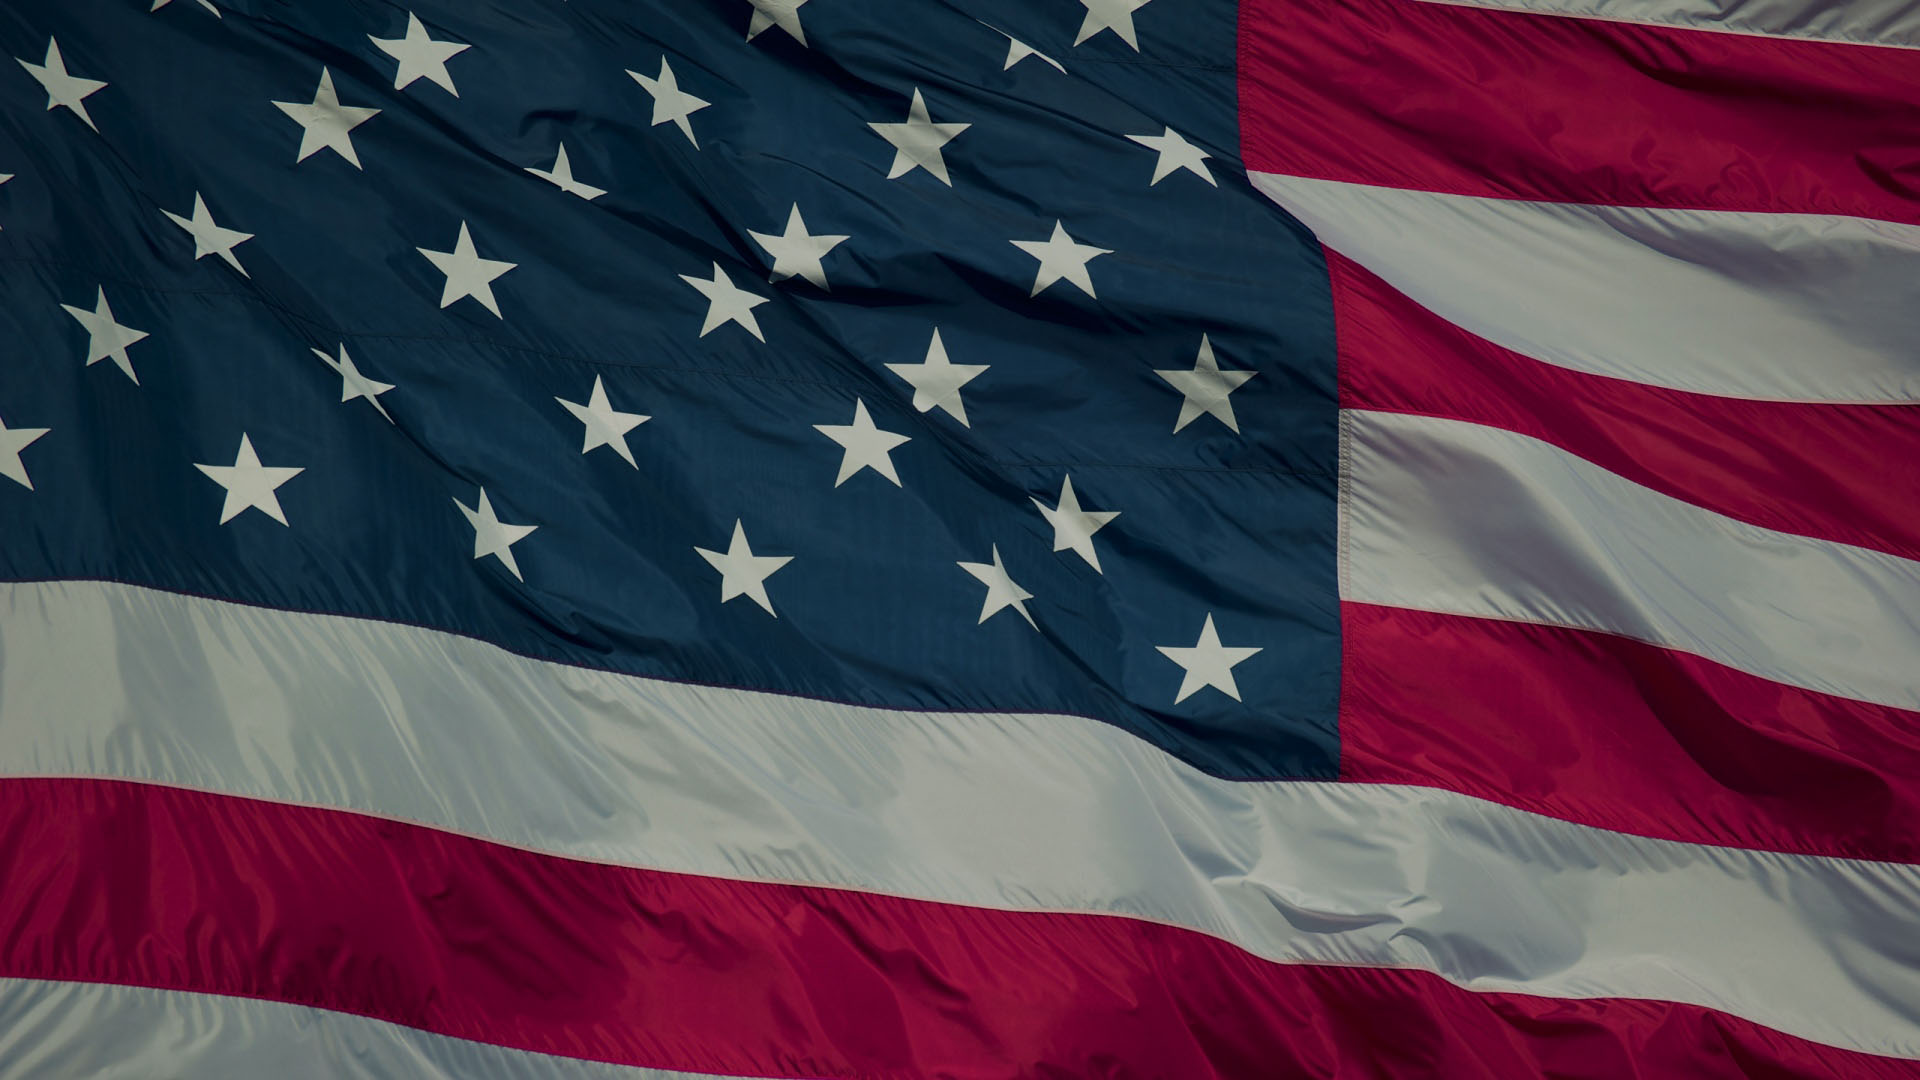 ws_USA_Flag_1920x1080